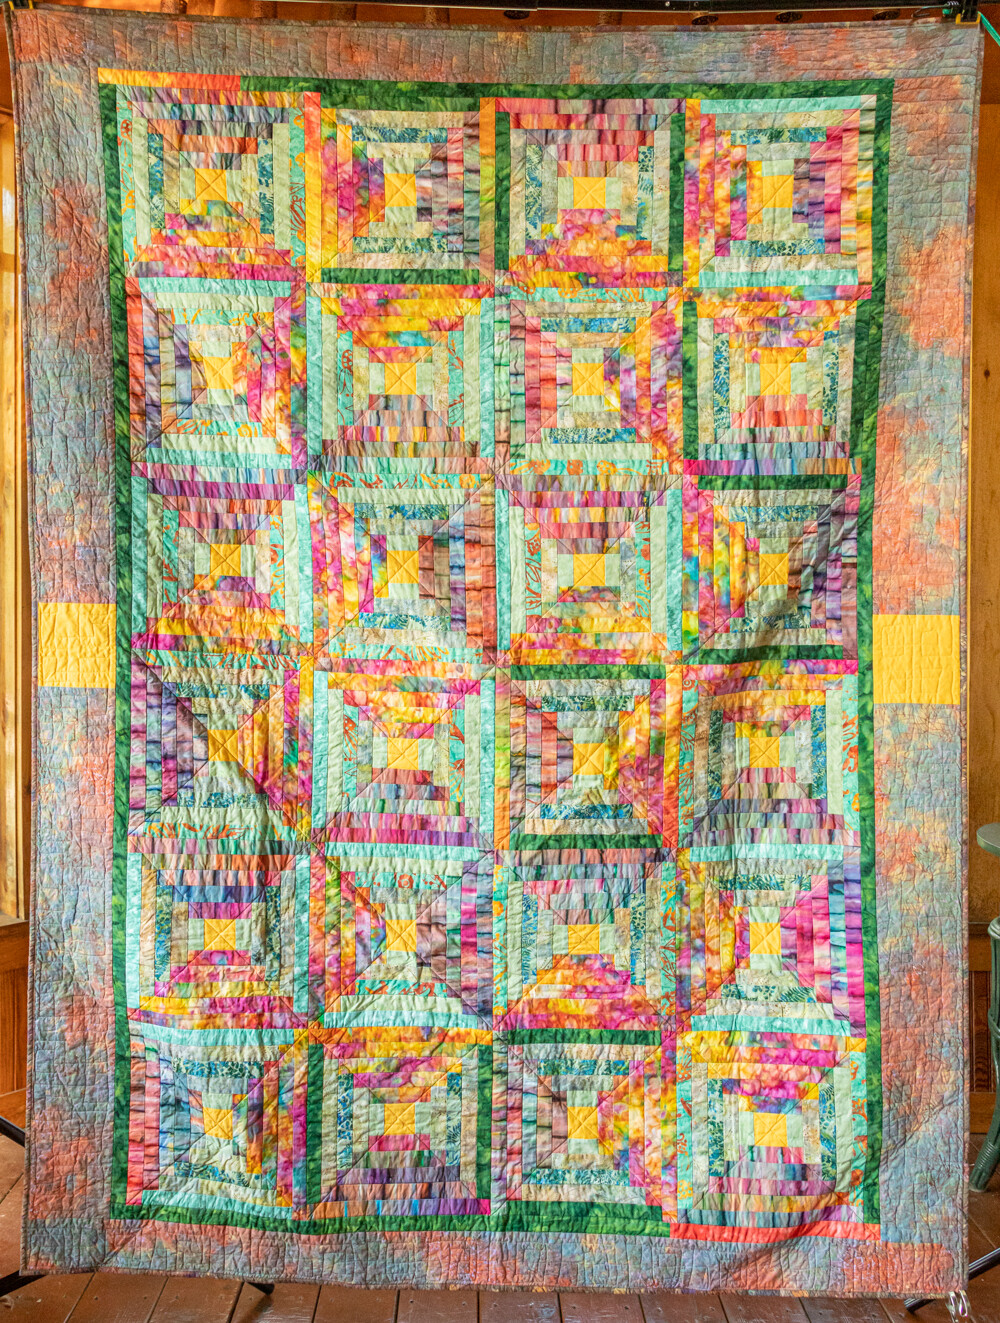 Quilt #17 - Colored Steps